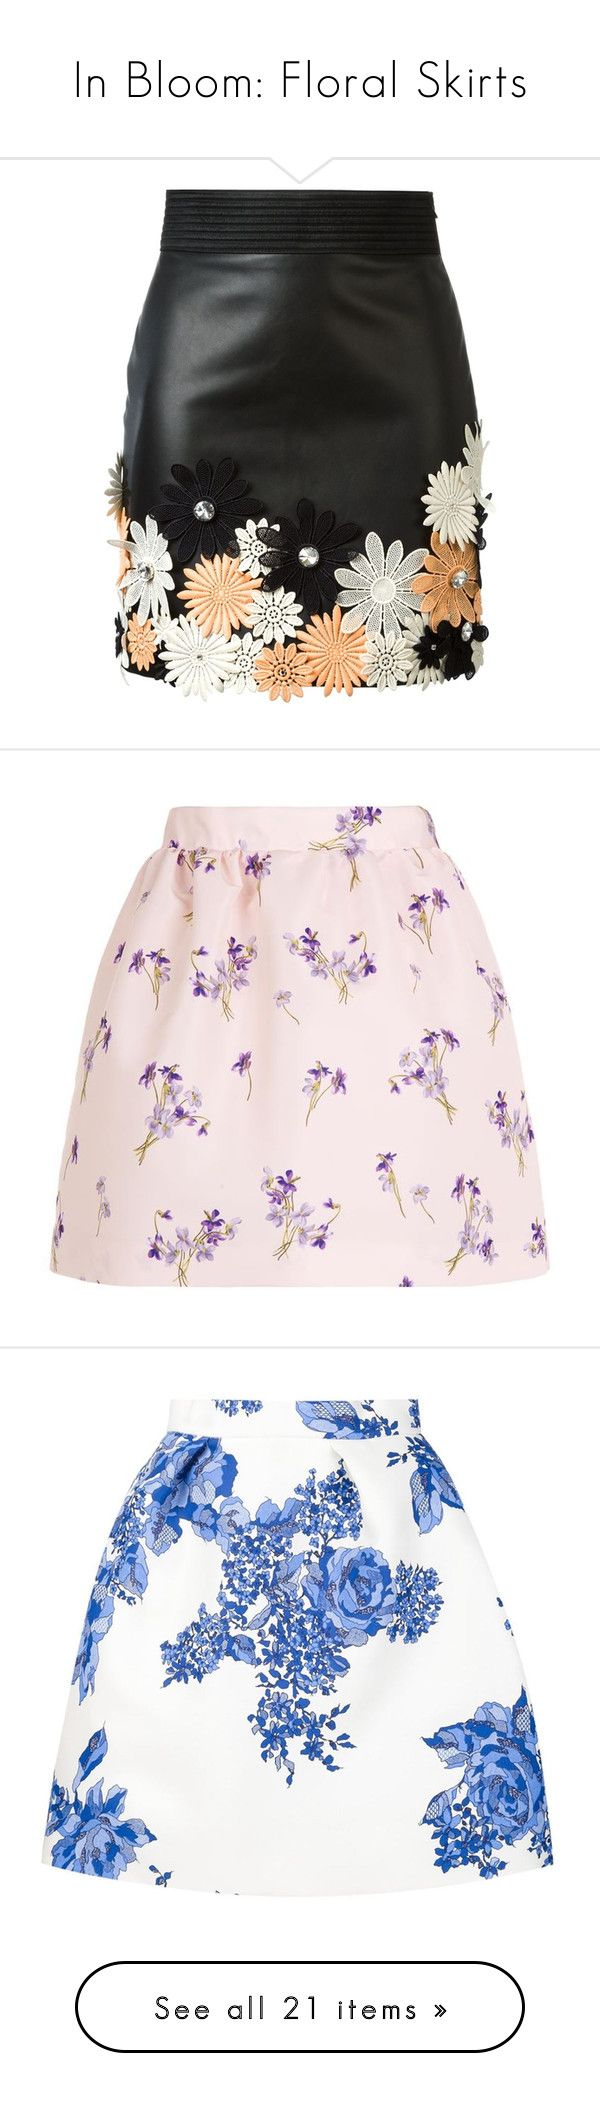 """In Bloom: Floral Skirts"" by polyvore-editorial ❤ liked on Polyvore featuring Floralskirts, INBLOOM, skirts, mini skirts, bottoms, saias, black, floral print skirt, floral skirt and multicolor skirt"